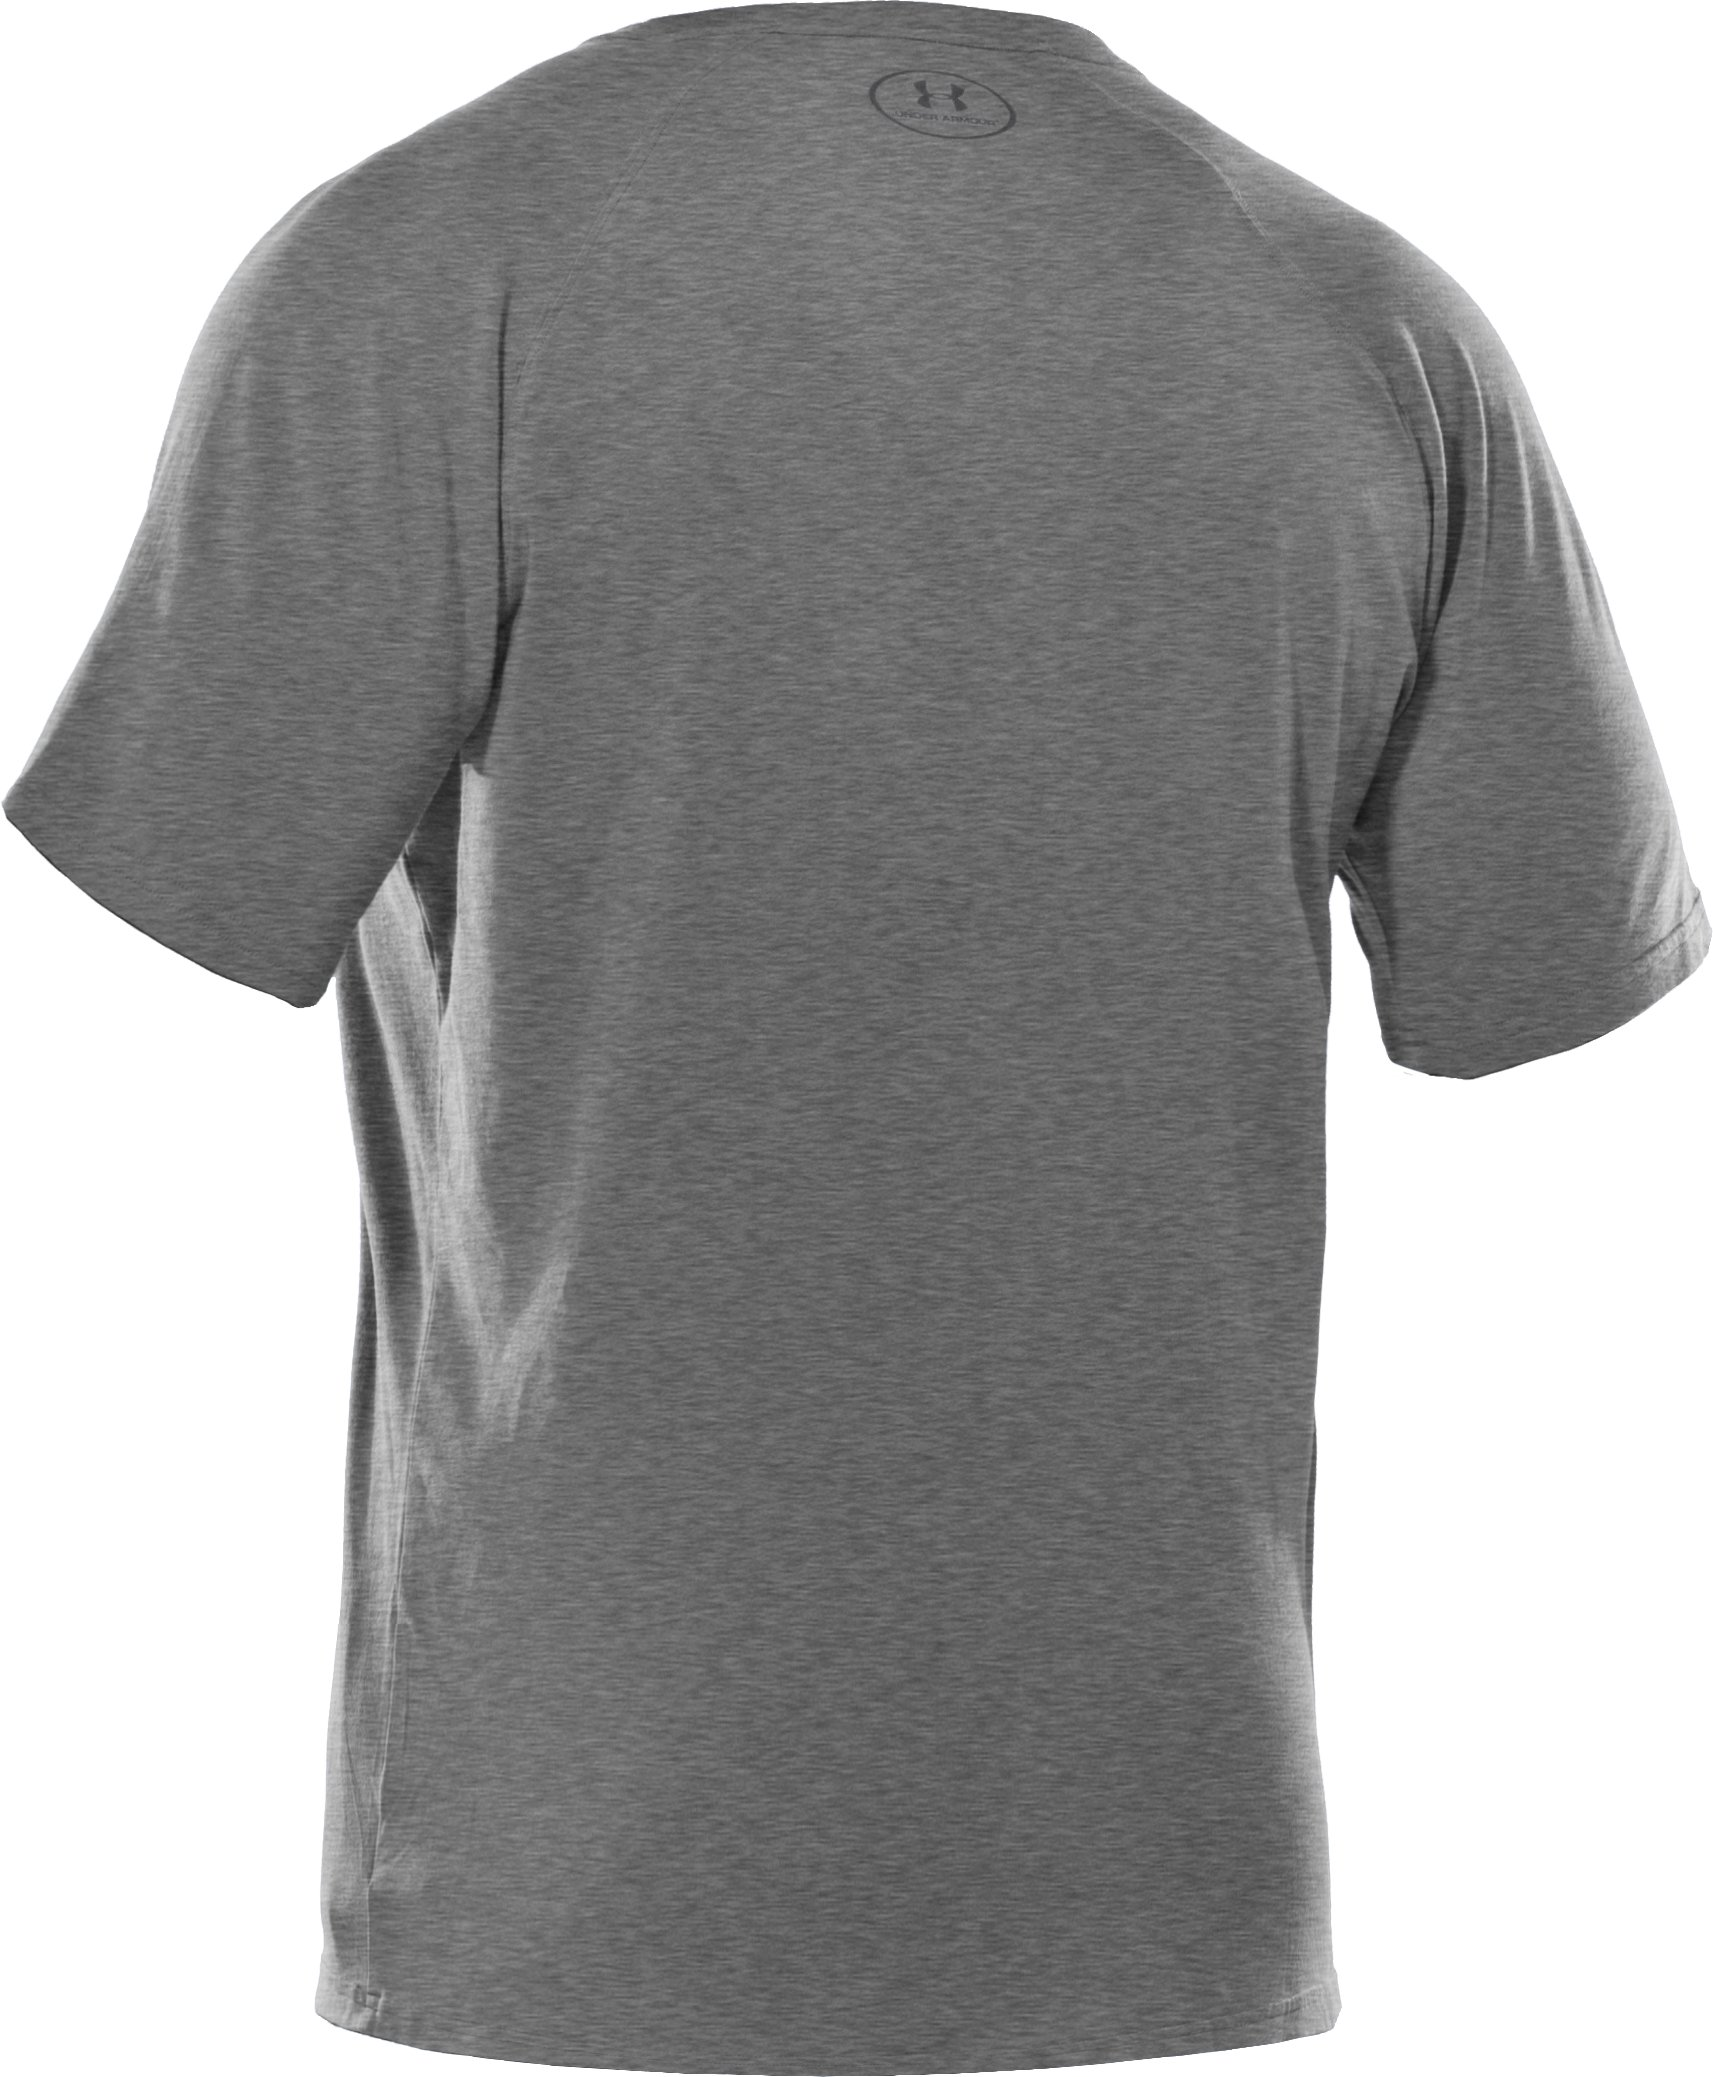 Men's Charged Cotton® V-Neck T-Shirt, True Gray Heather